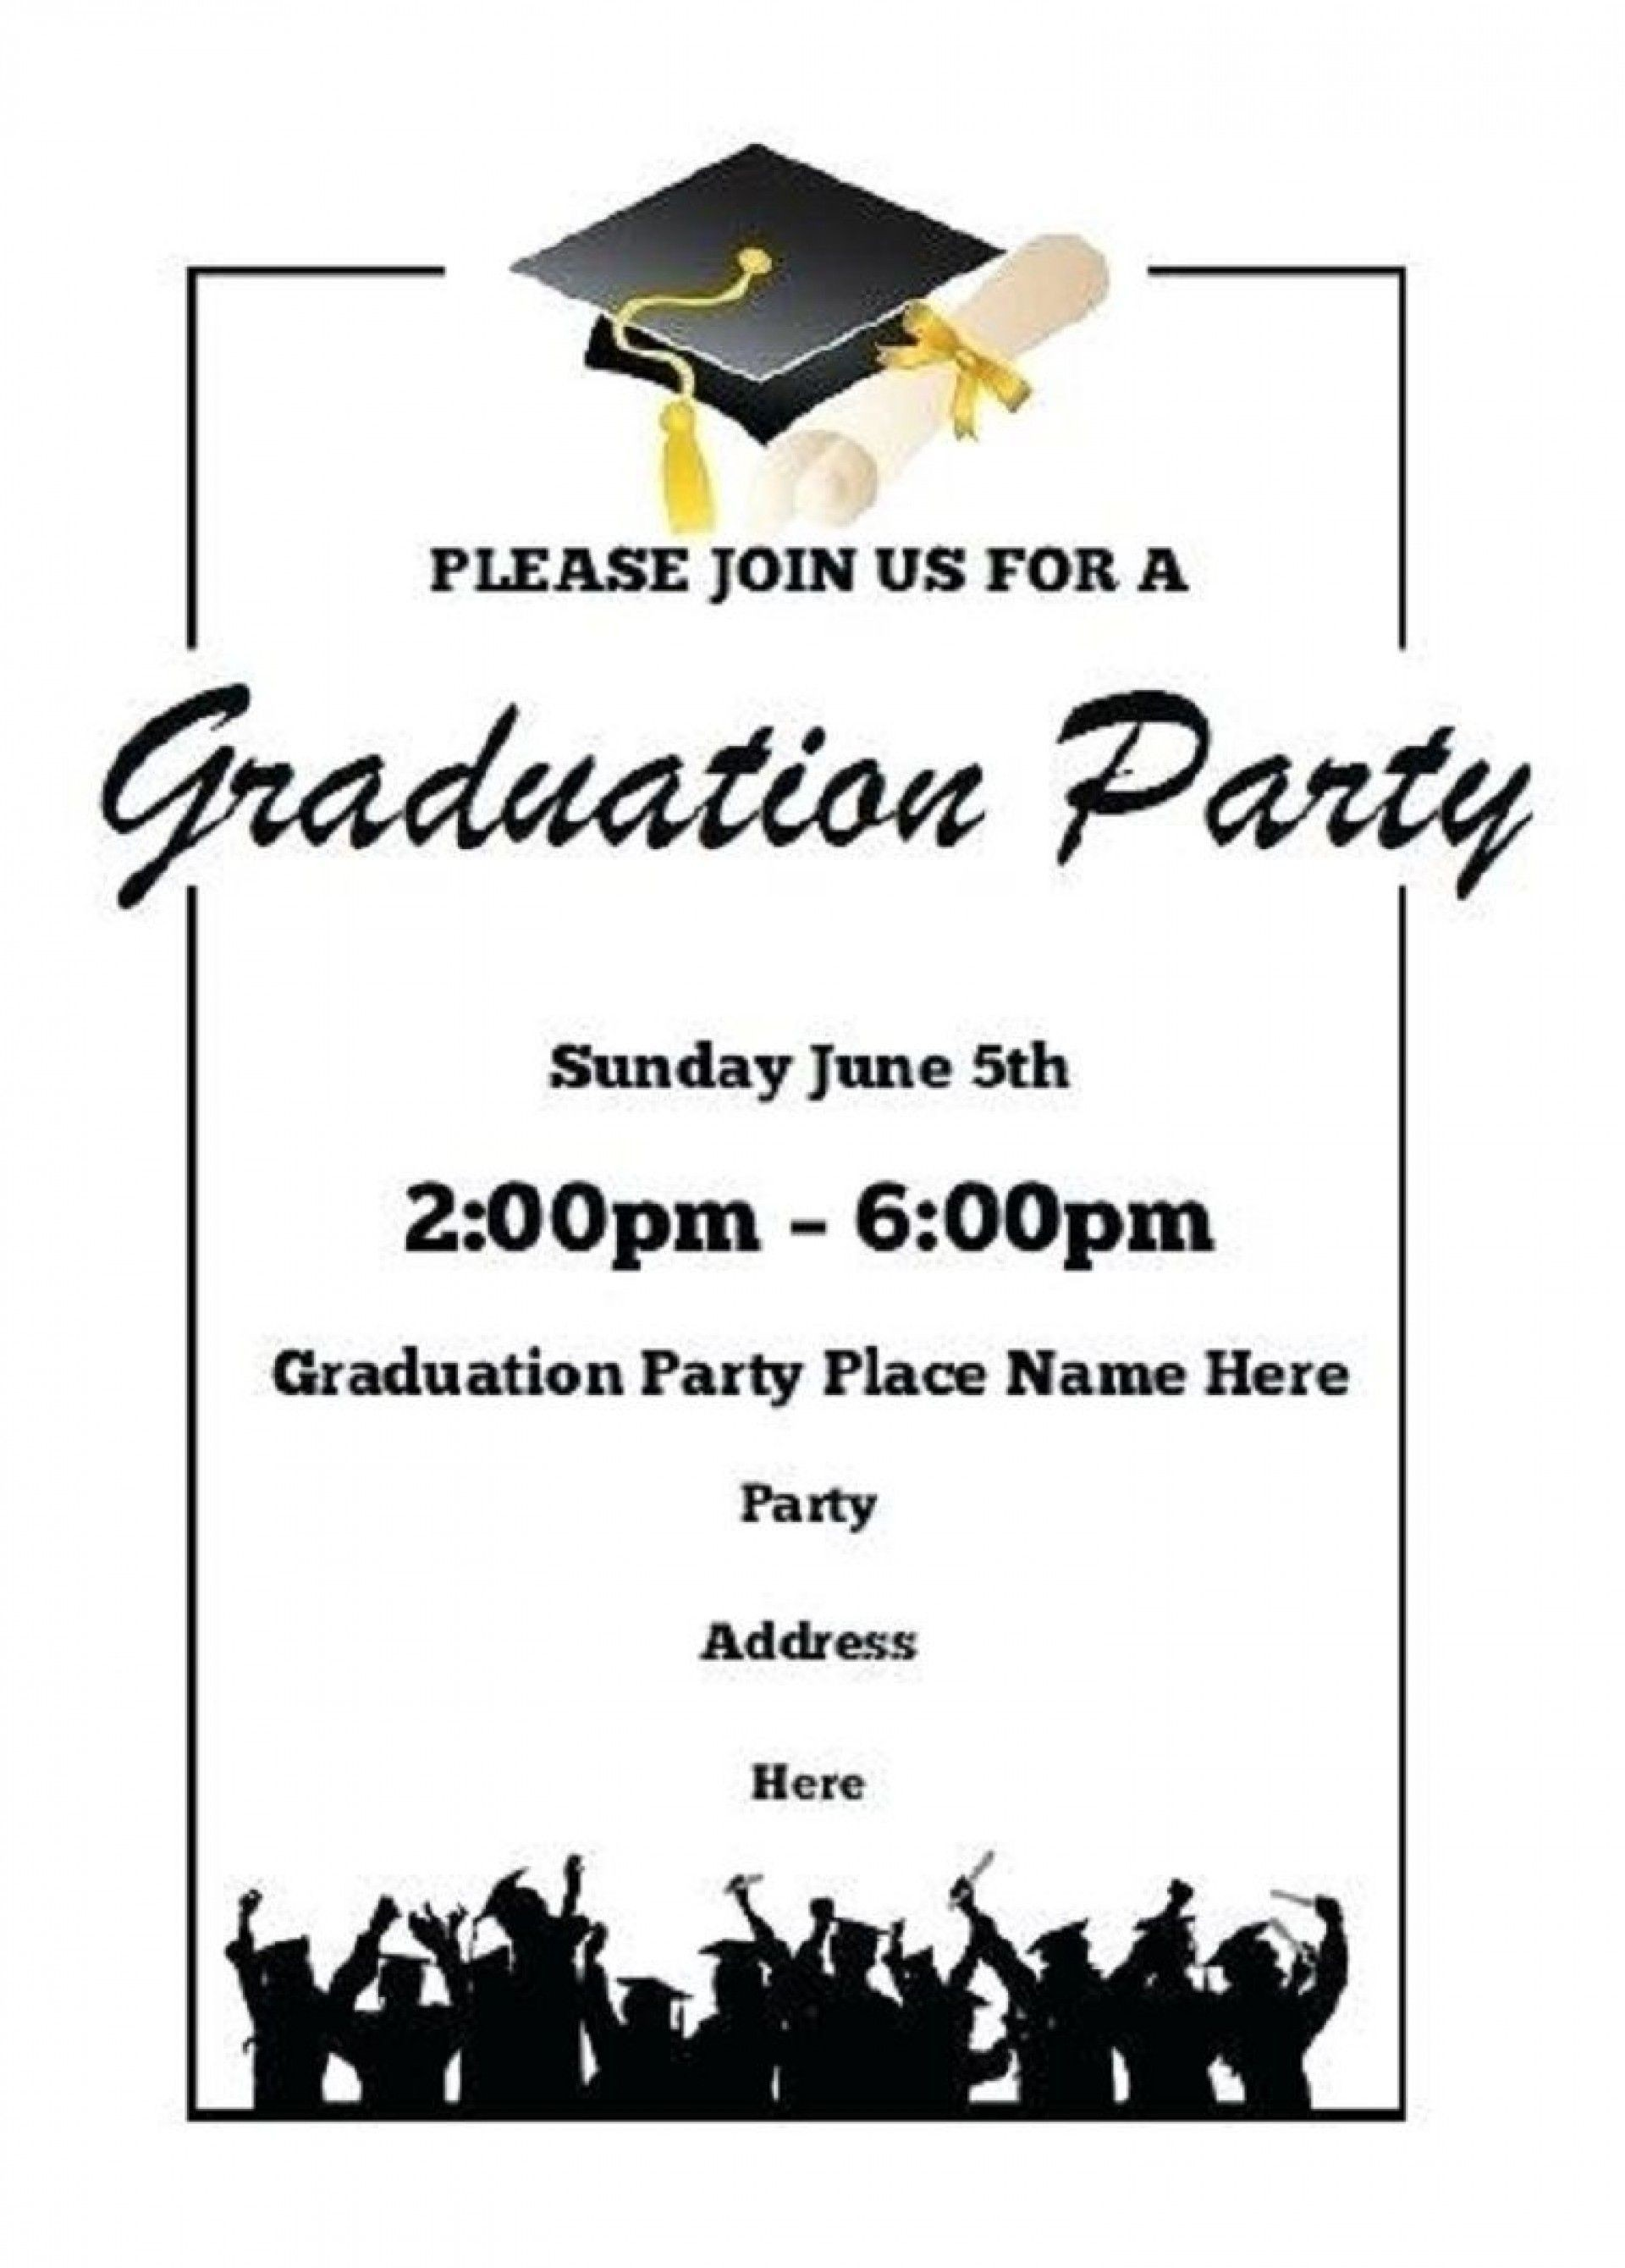 002 Singular Free Printable Graduation Invitation Template High Resolution  Preschool Card 20191920